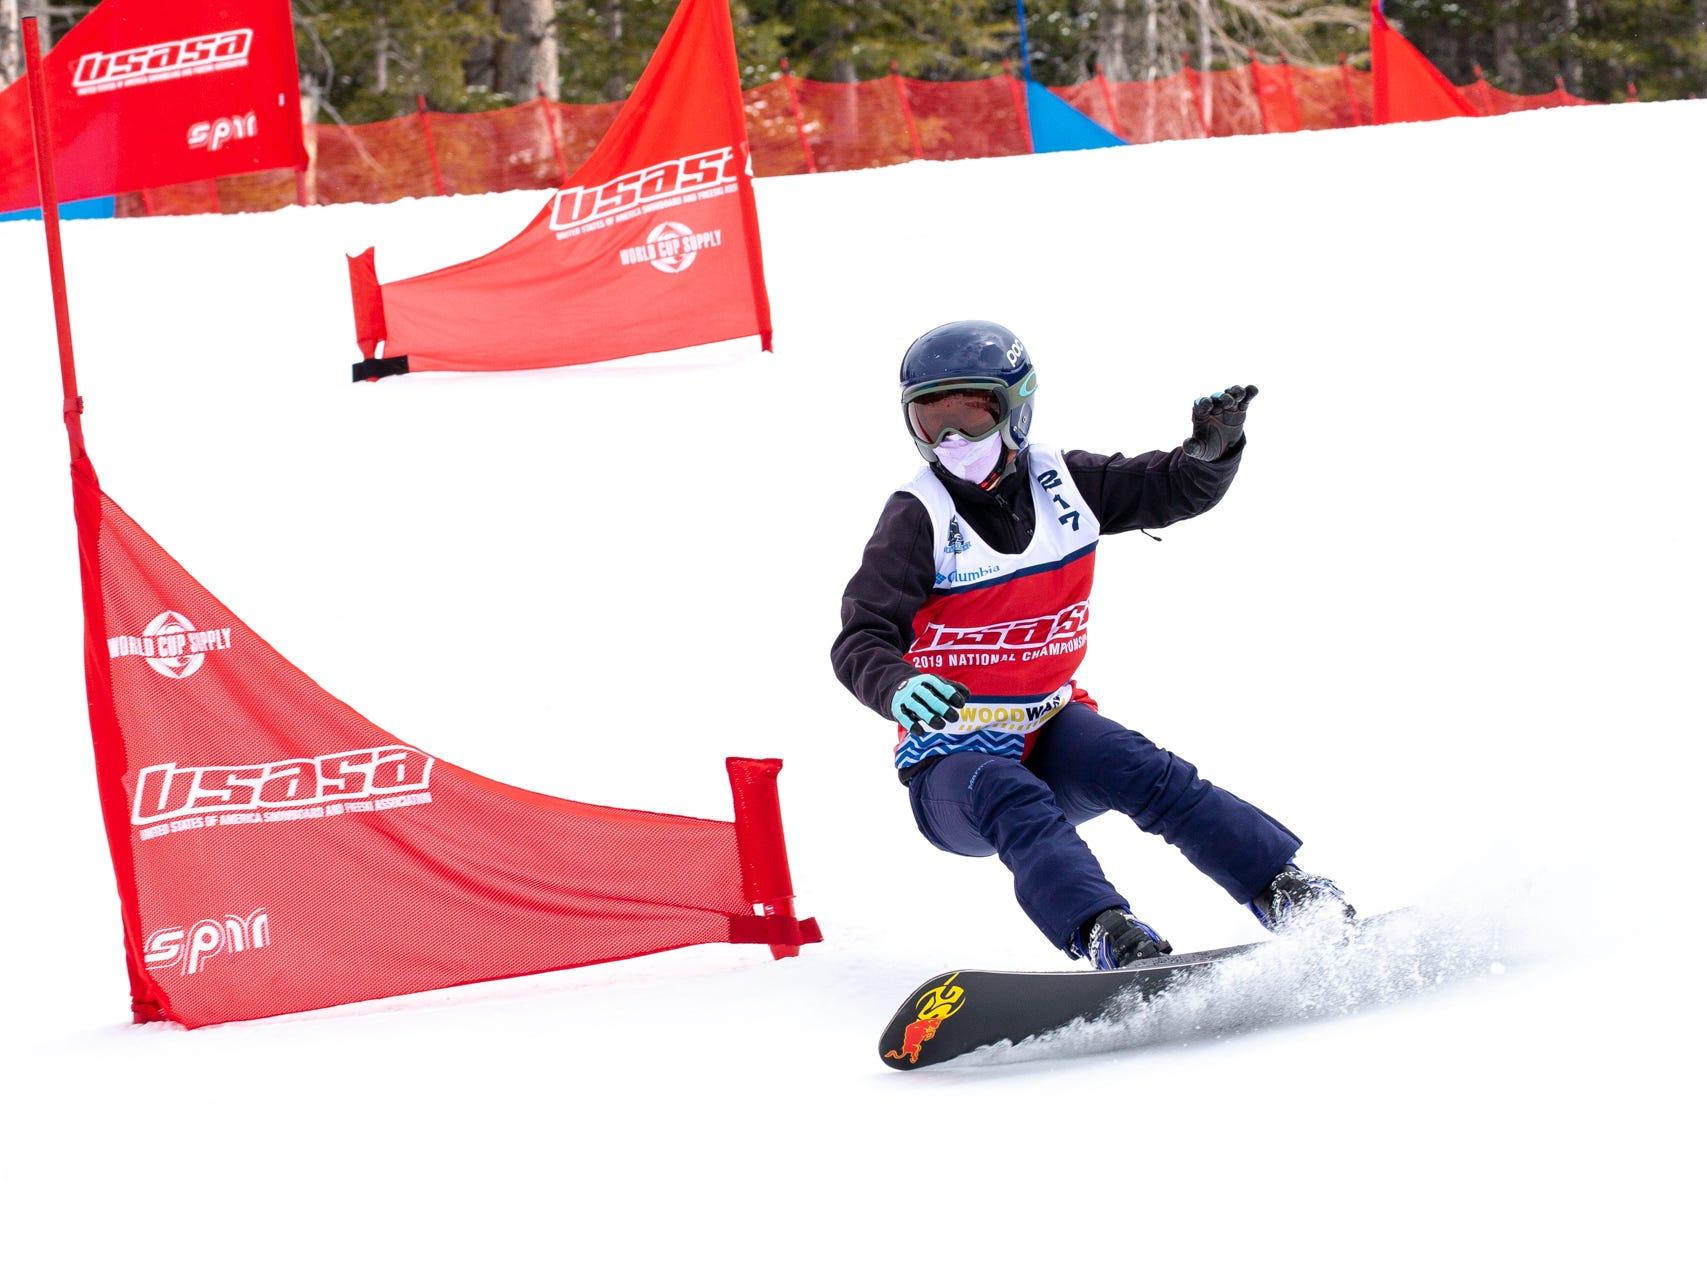 Sage Will of Shasta High / North State snowboarders compete at the 2019 USASA National Championships at Copper Mountain in Colorado.